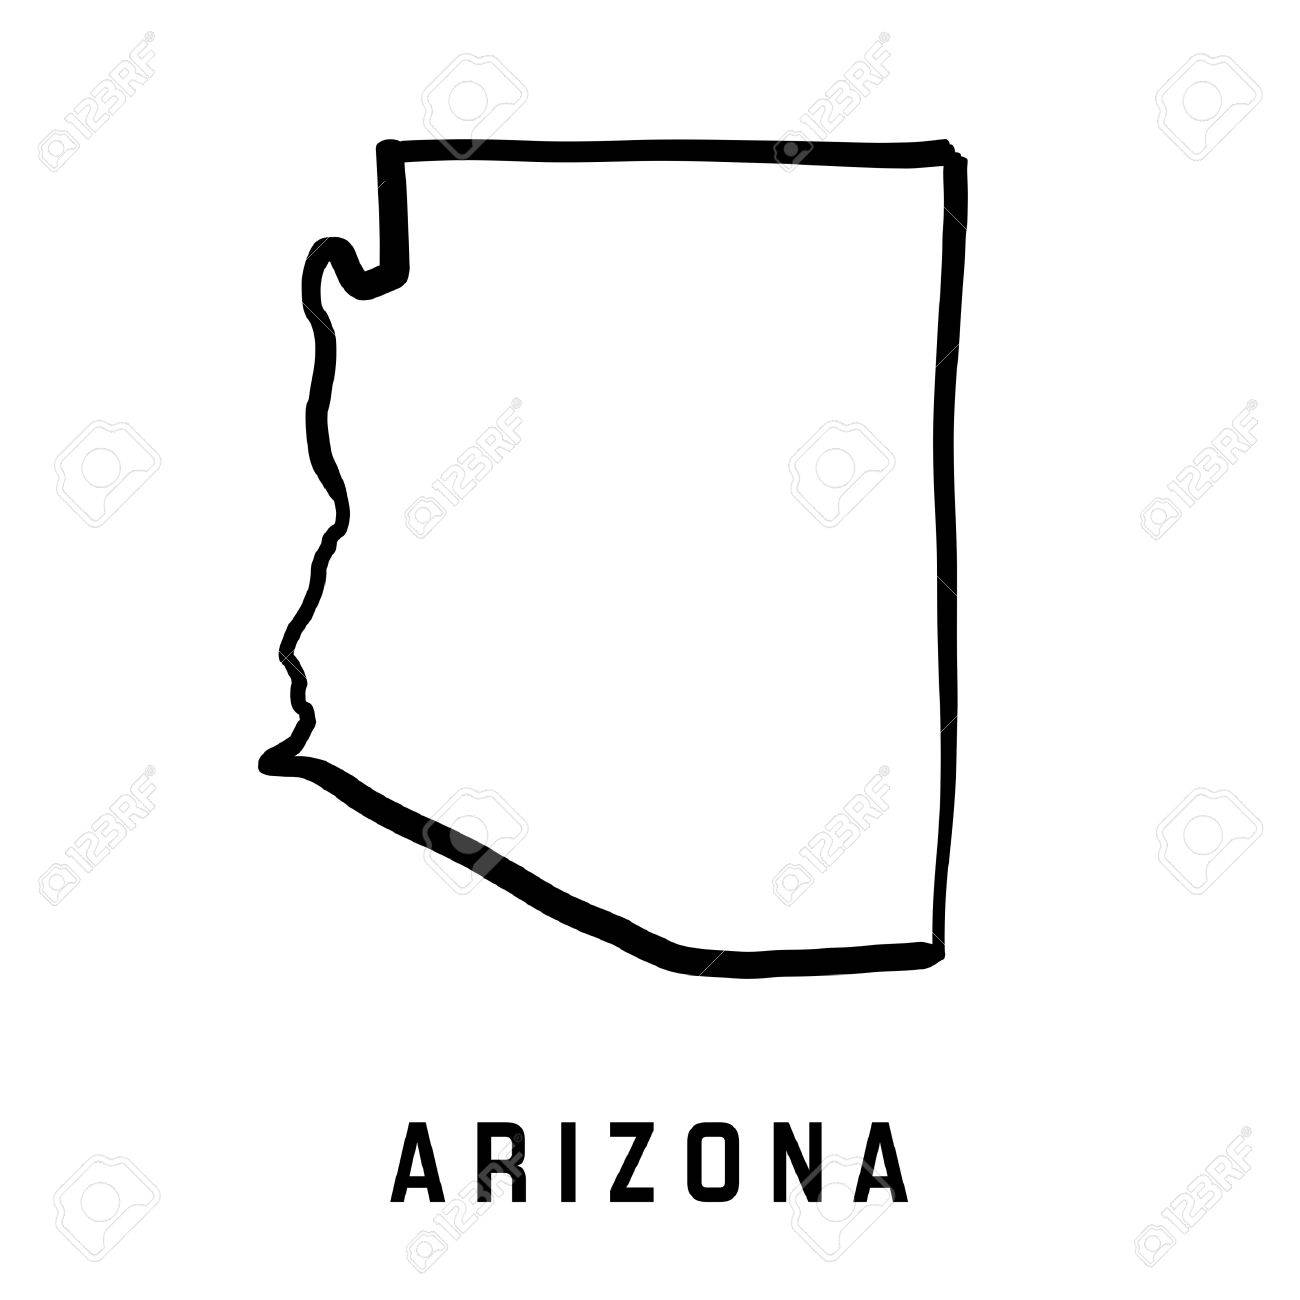 Arizona State Map Outline   Smooth Simplified US State Shape